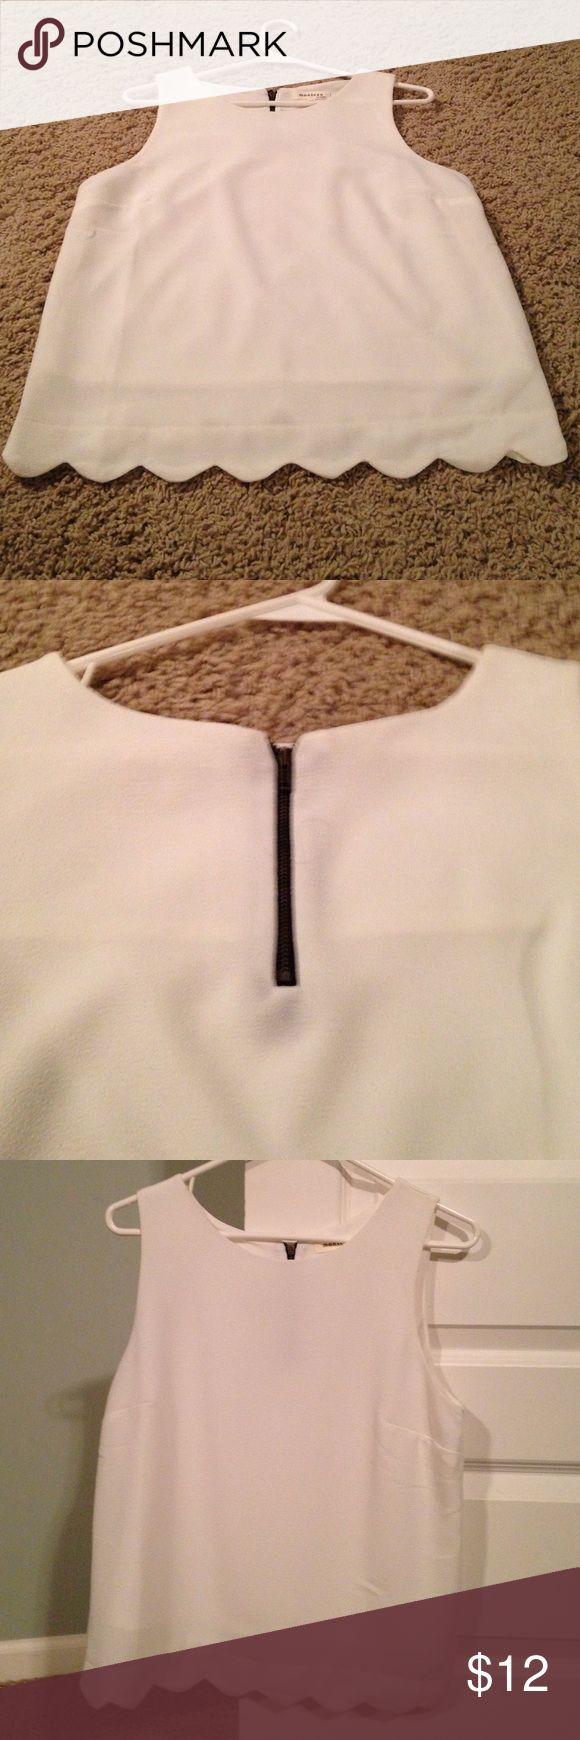 White Sleeveless Scalloped Top White Sleeveless top with scallop detail st bottom. Back has a zipper. Super cute and NWOT! Never worn Monteau Tops Tank Tops